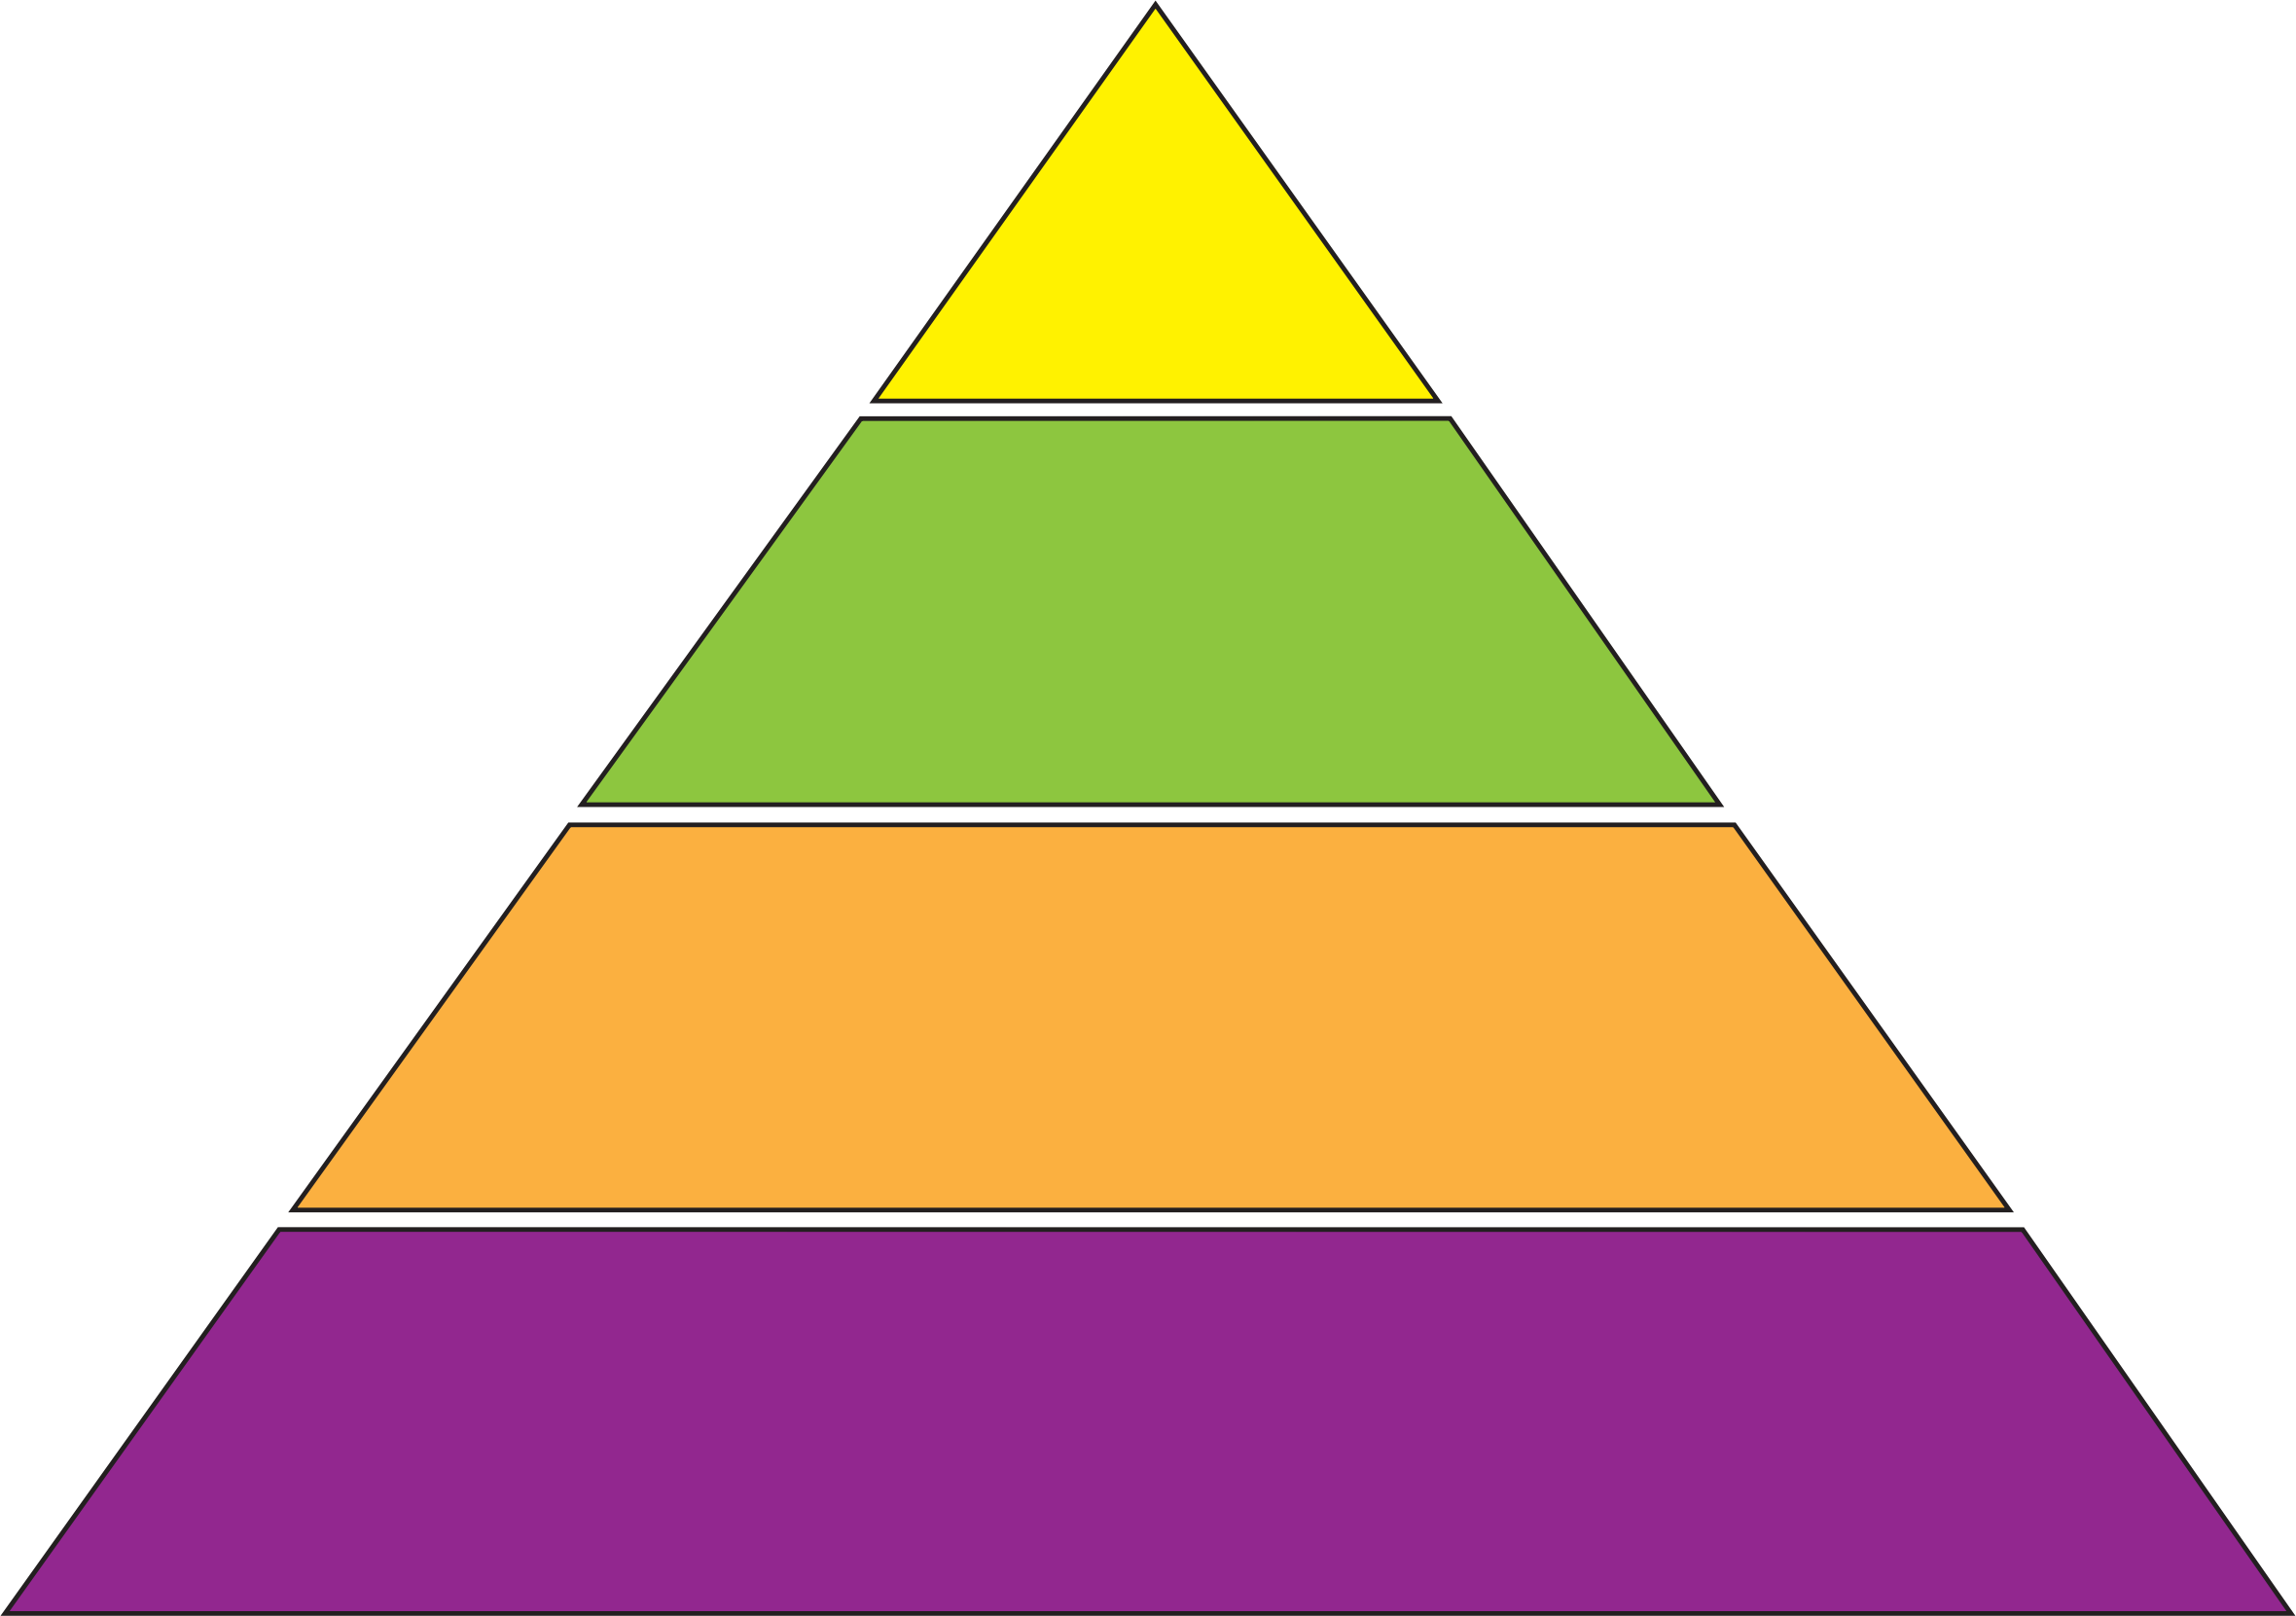 Concept Pyramid Diagram: https://openclipart.org/detail/181786/concept-pyramid-diagram-by...